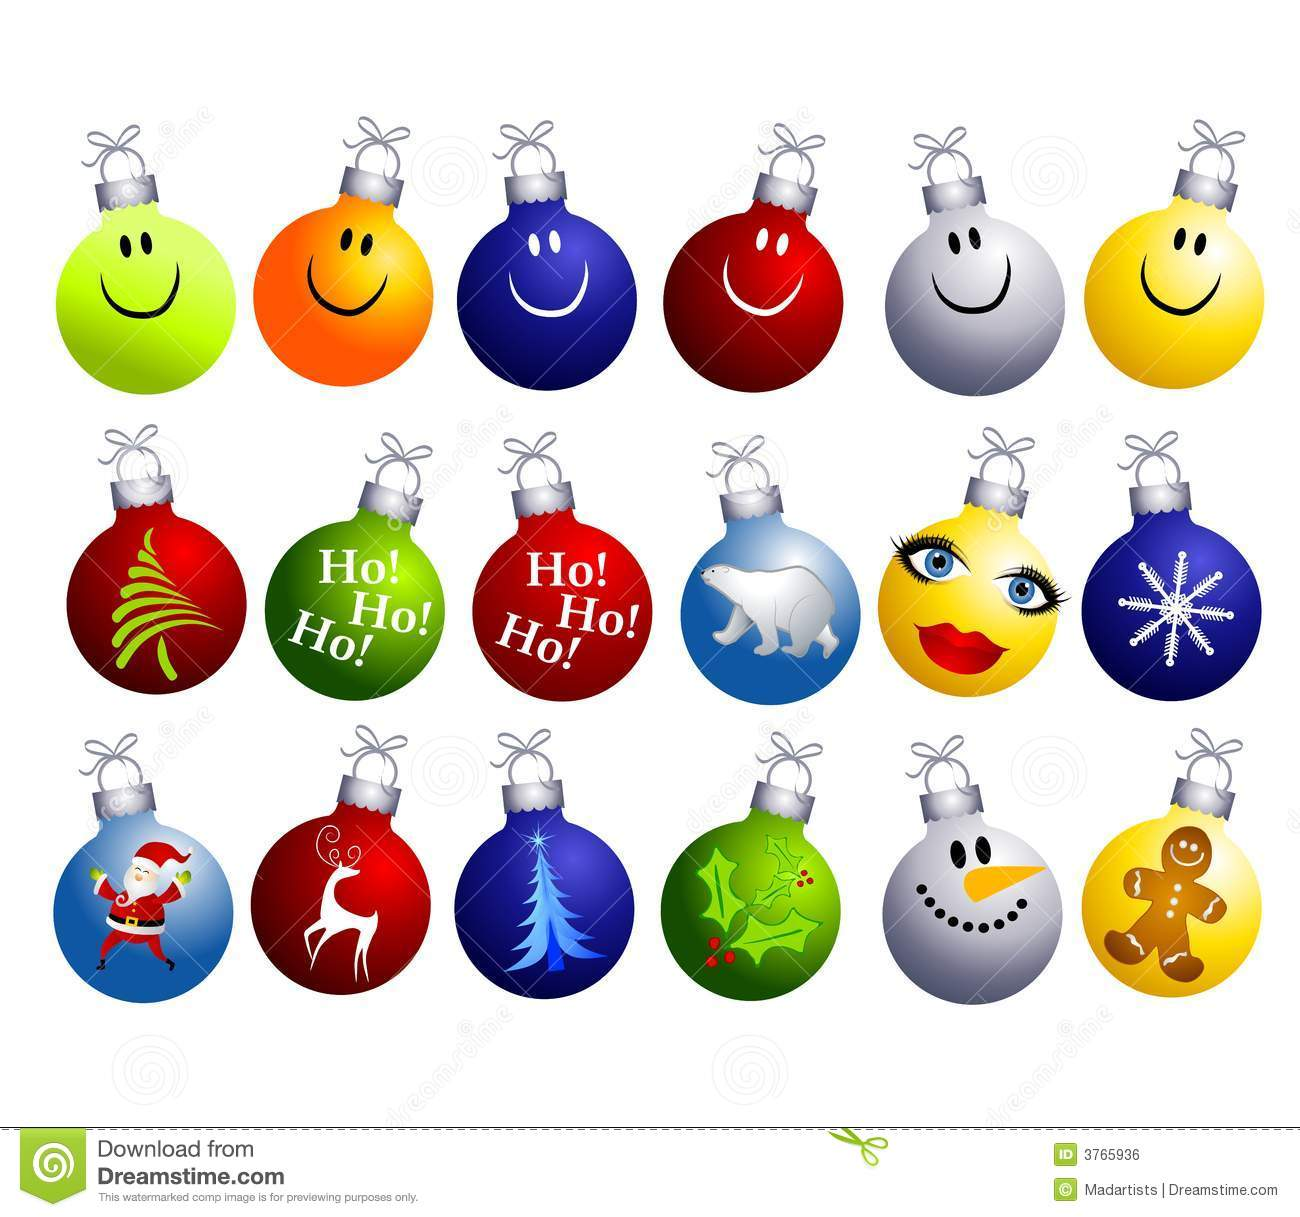 Free stock images clipart clip Assorted Christmas Ornaments Clip Art Royalty Free Stock Image ... clip